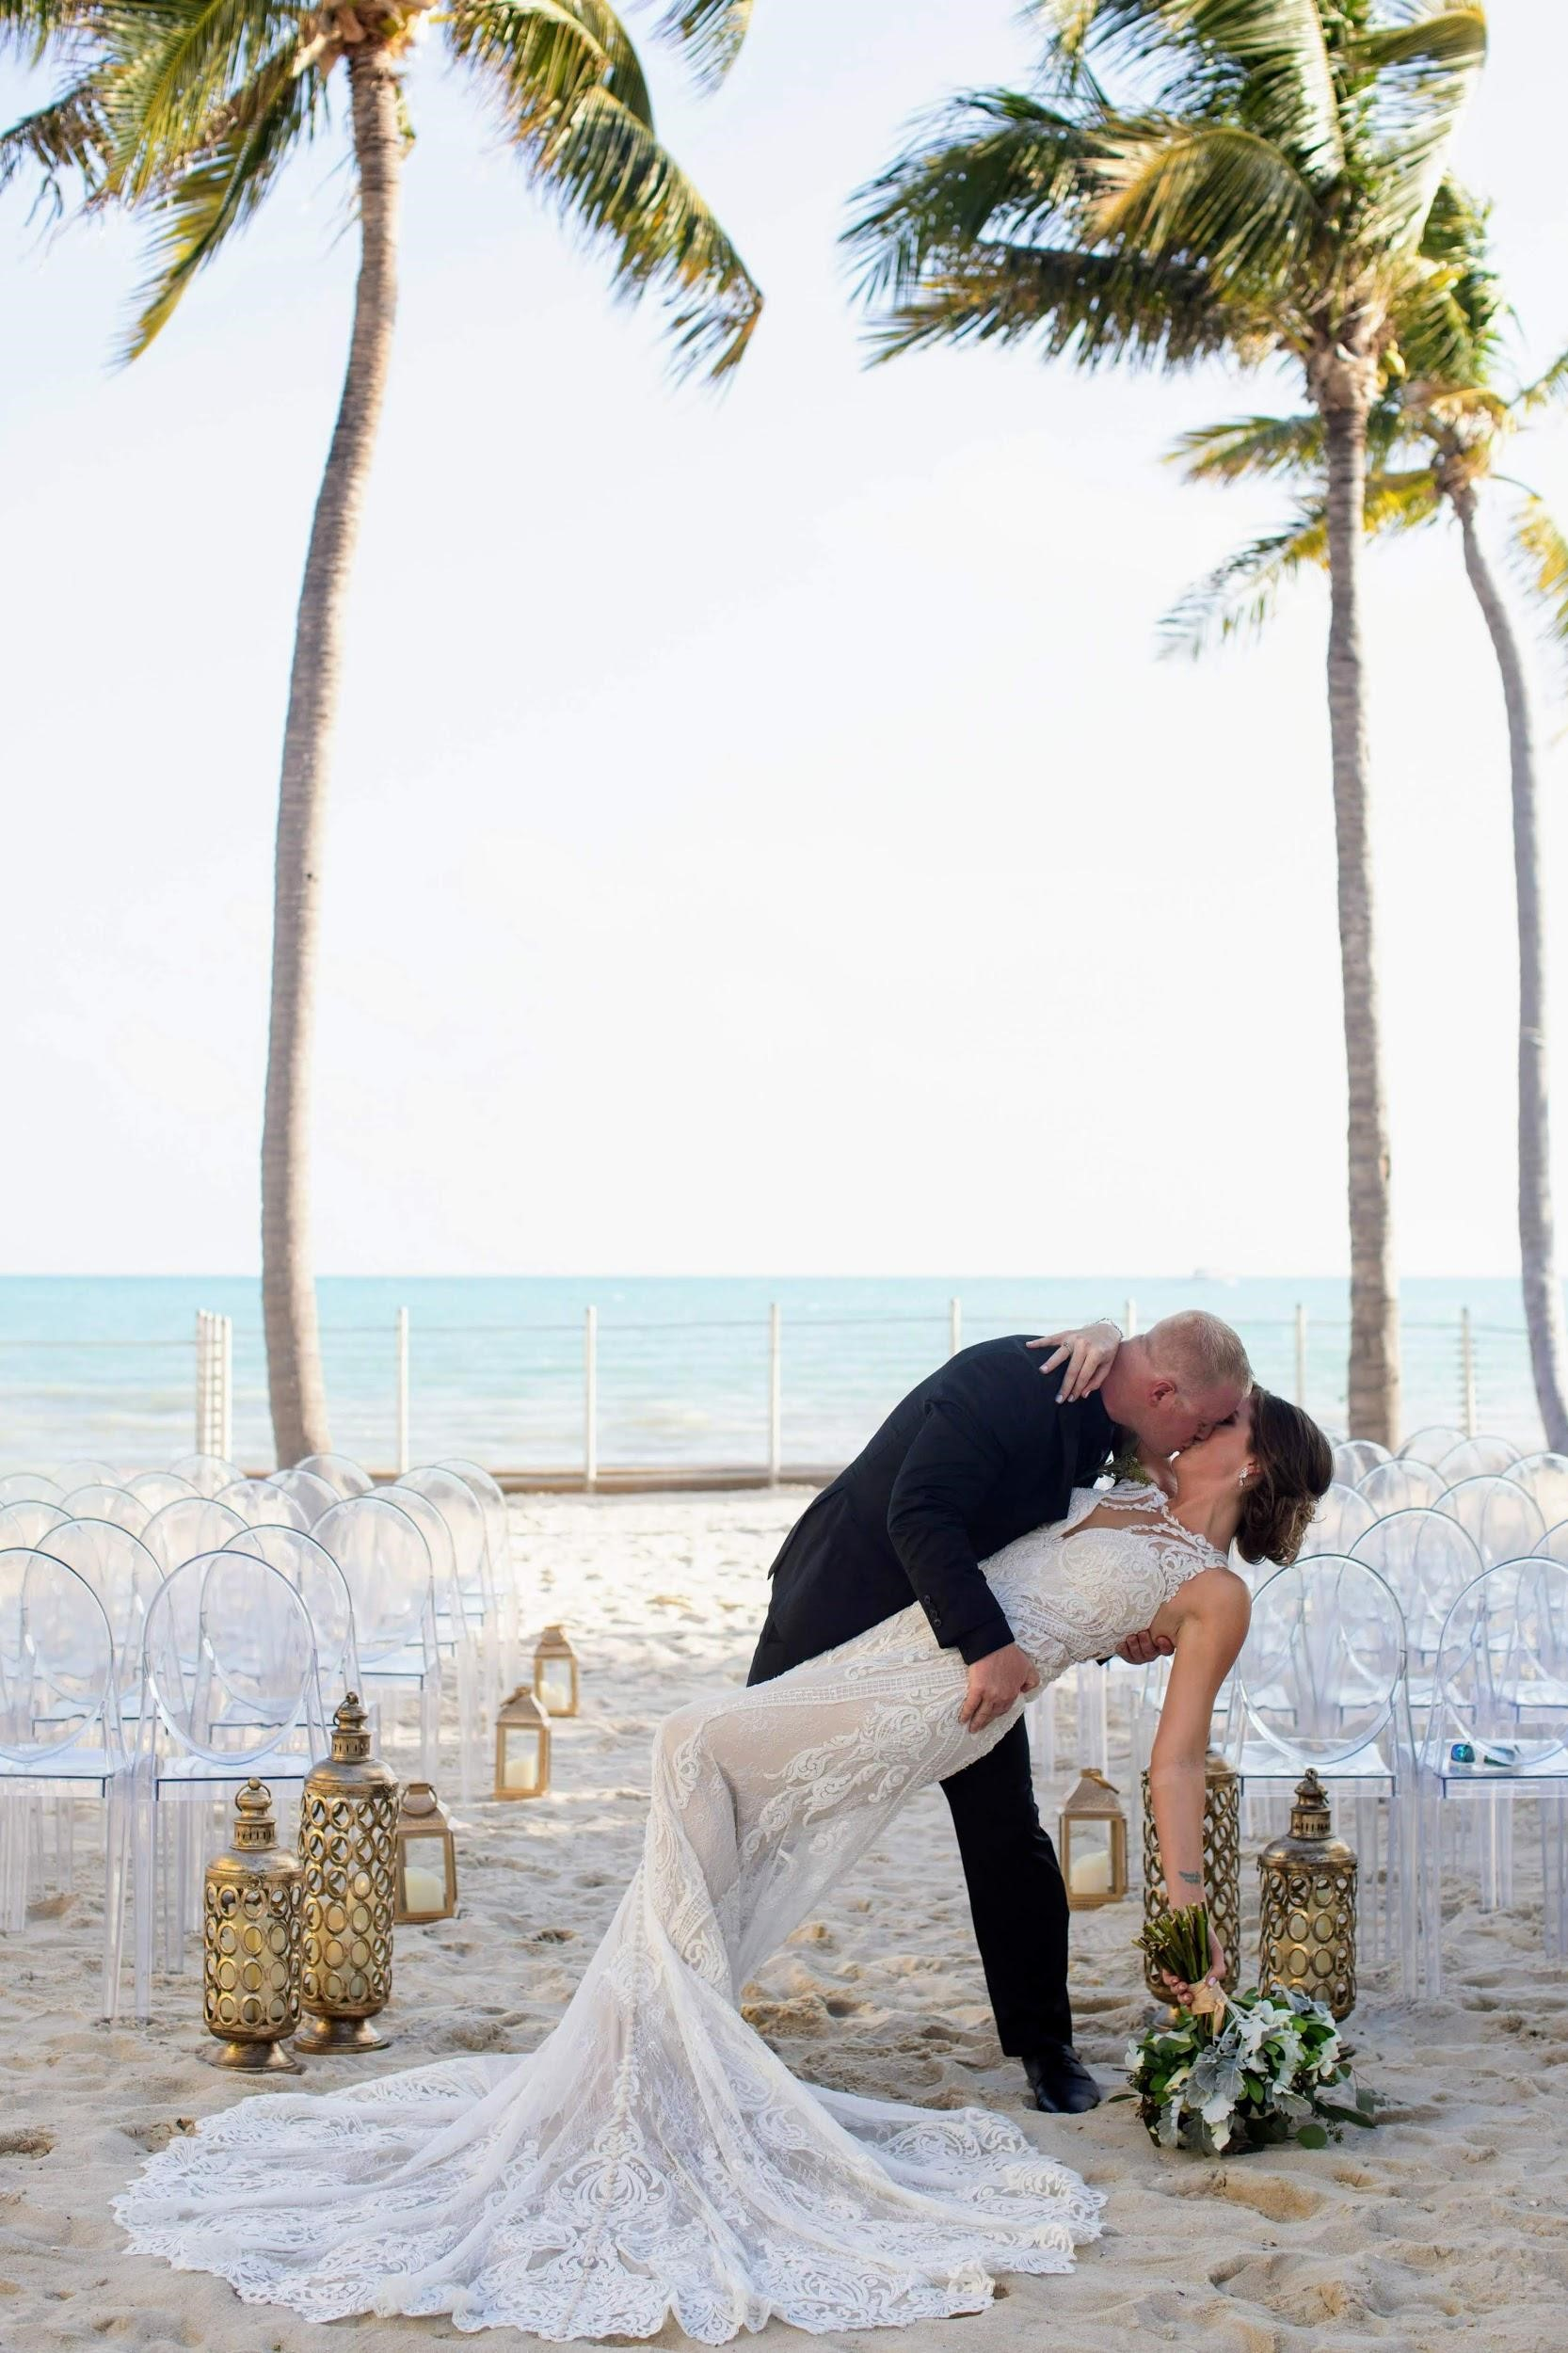 Destination Wedding Tips From the Bride 1